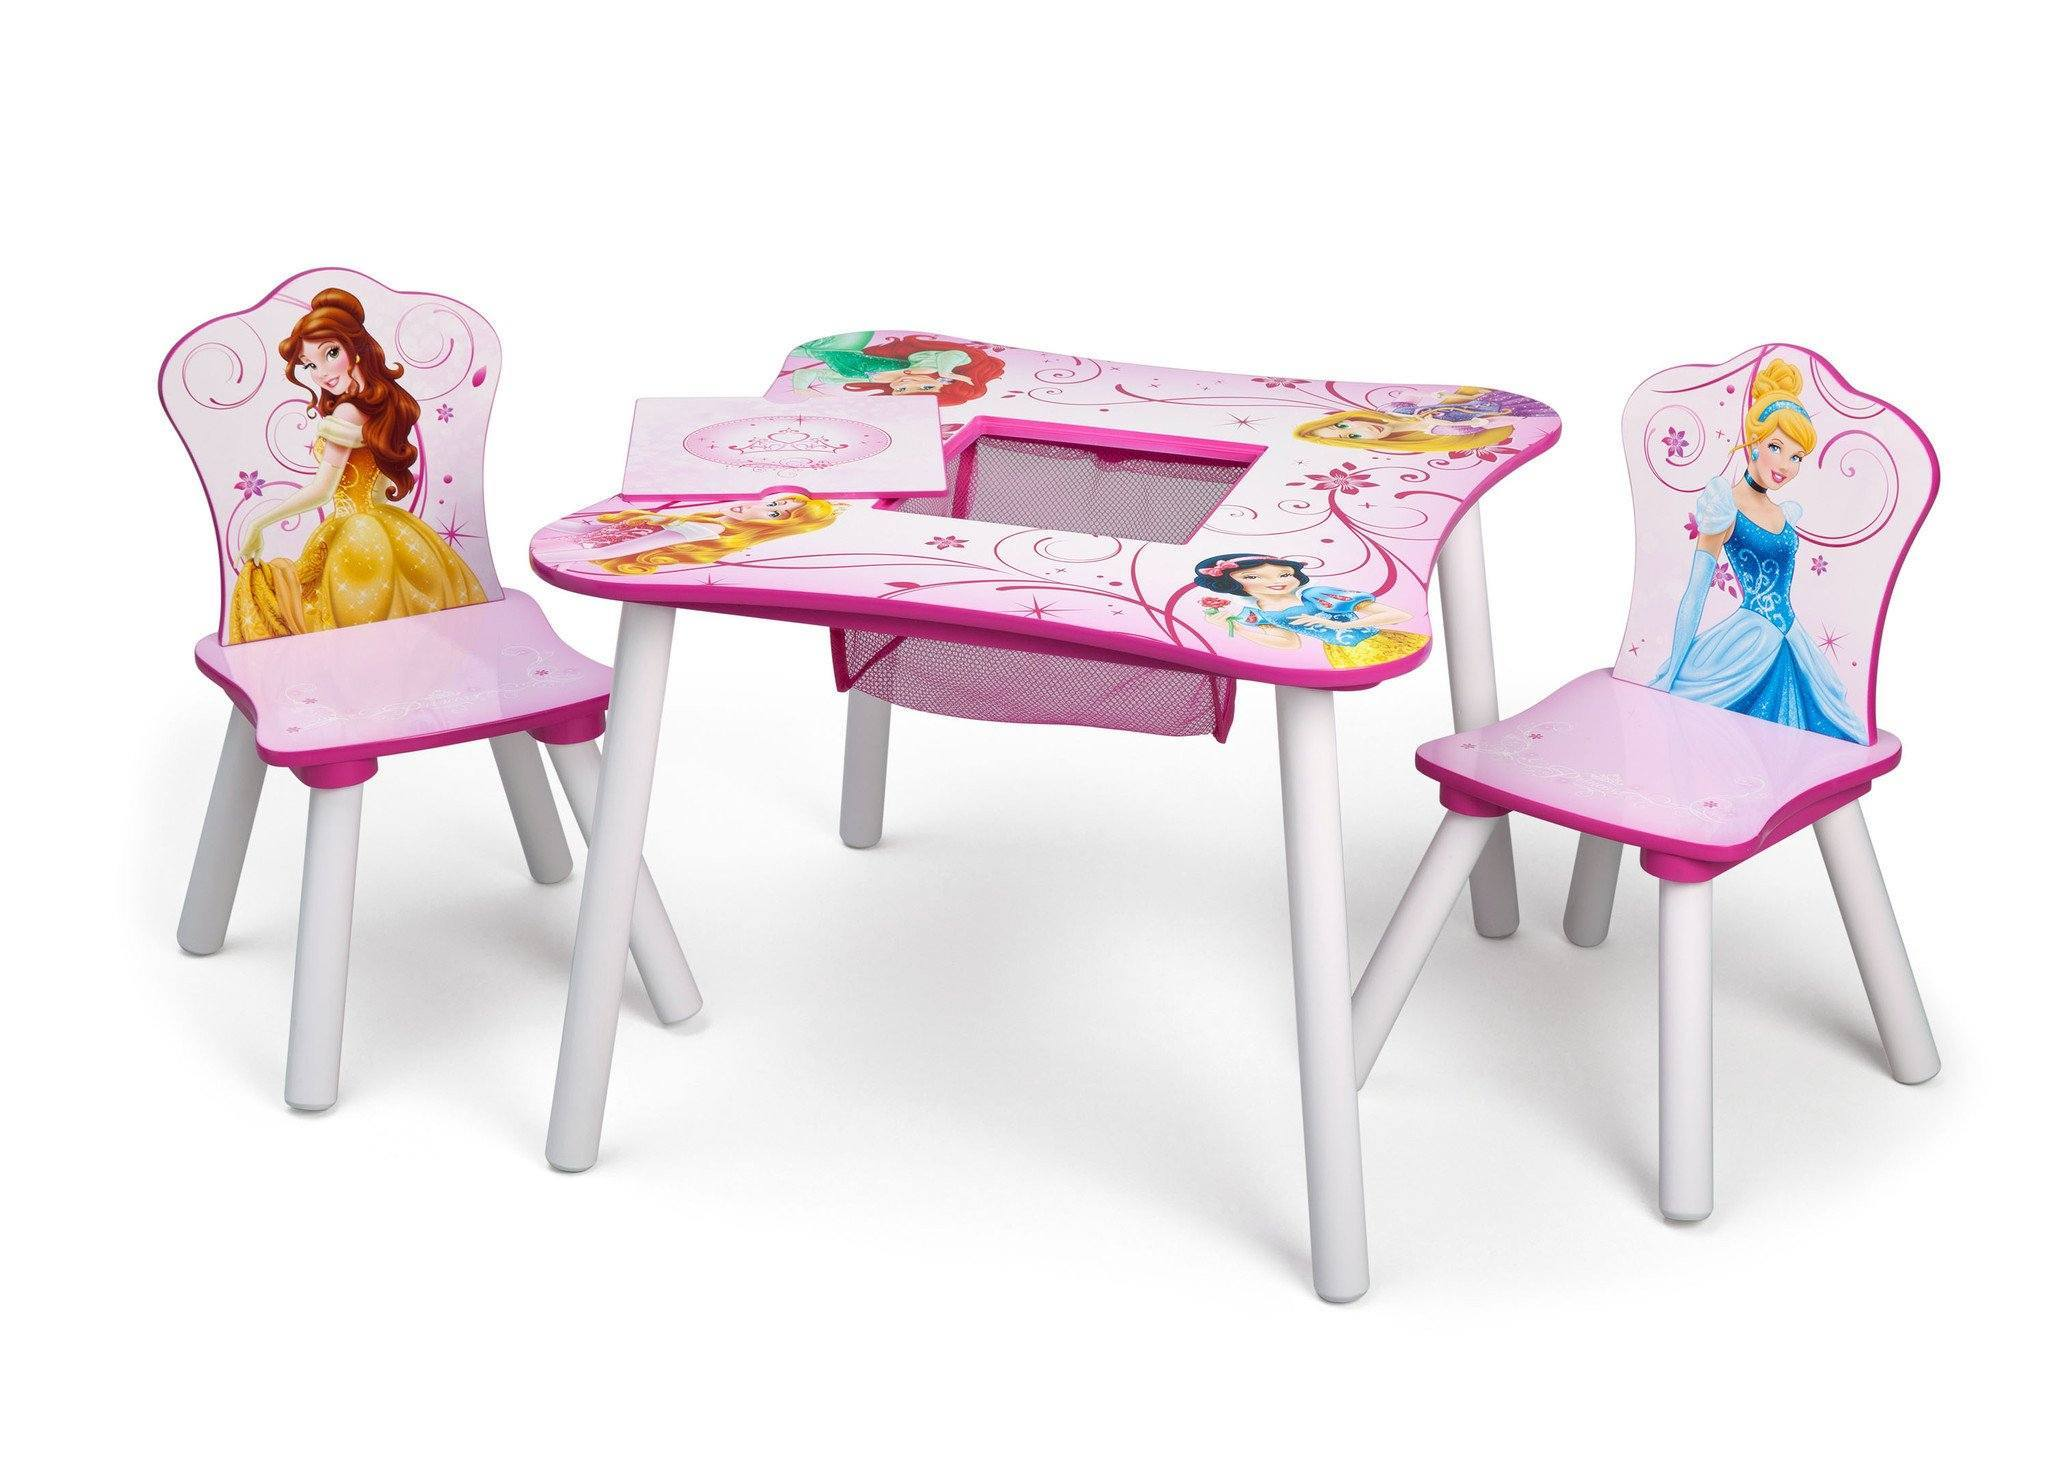 ... Delta Children Princess Table and Chair Set with Storage Left View a2a  sc 1 st  Delta Children & Princess Table \u0026 Chair Set with Storage | Delta Children